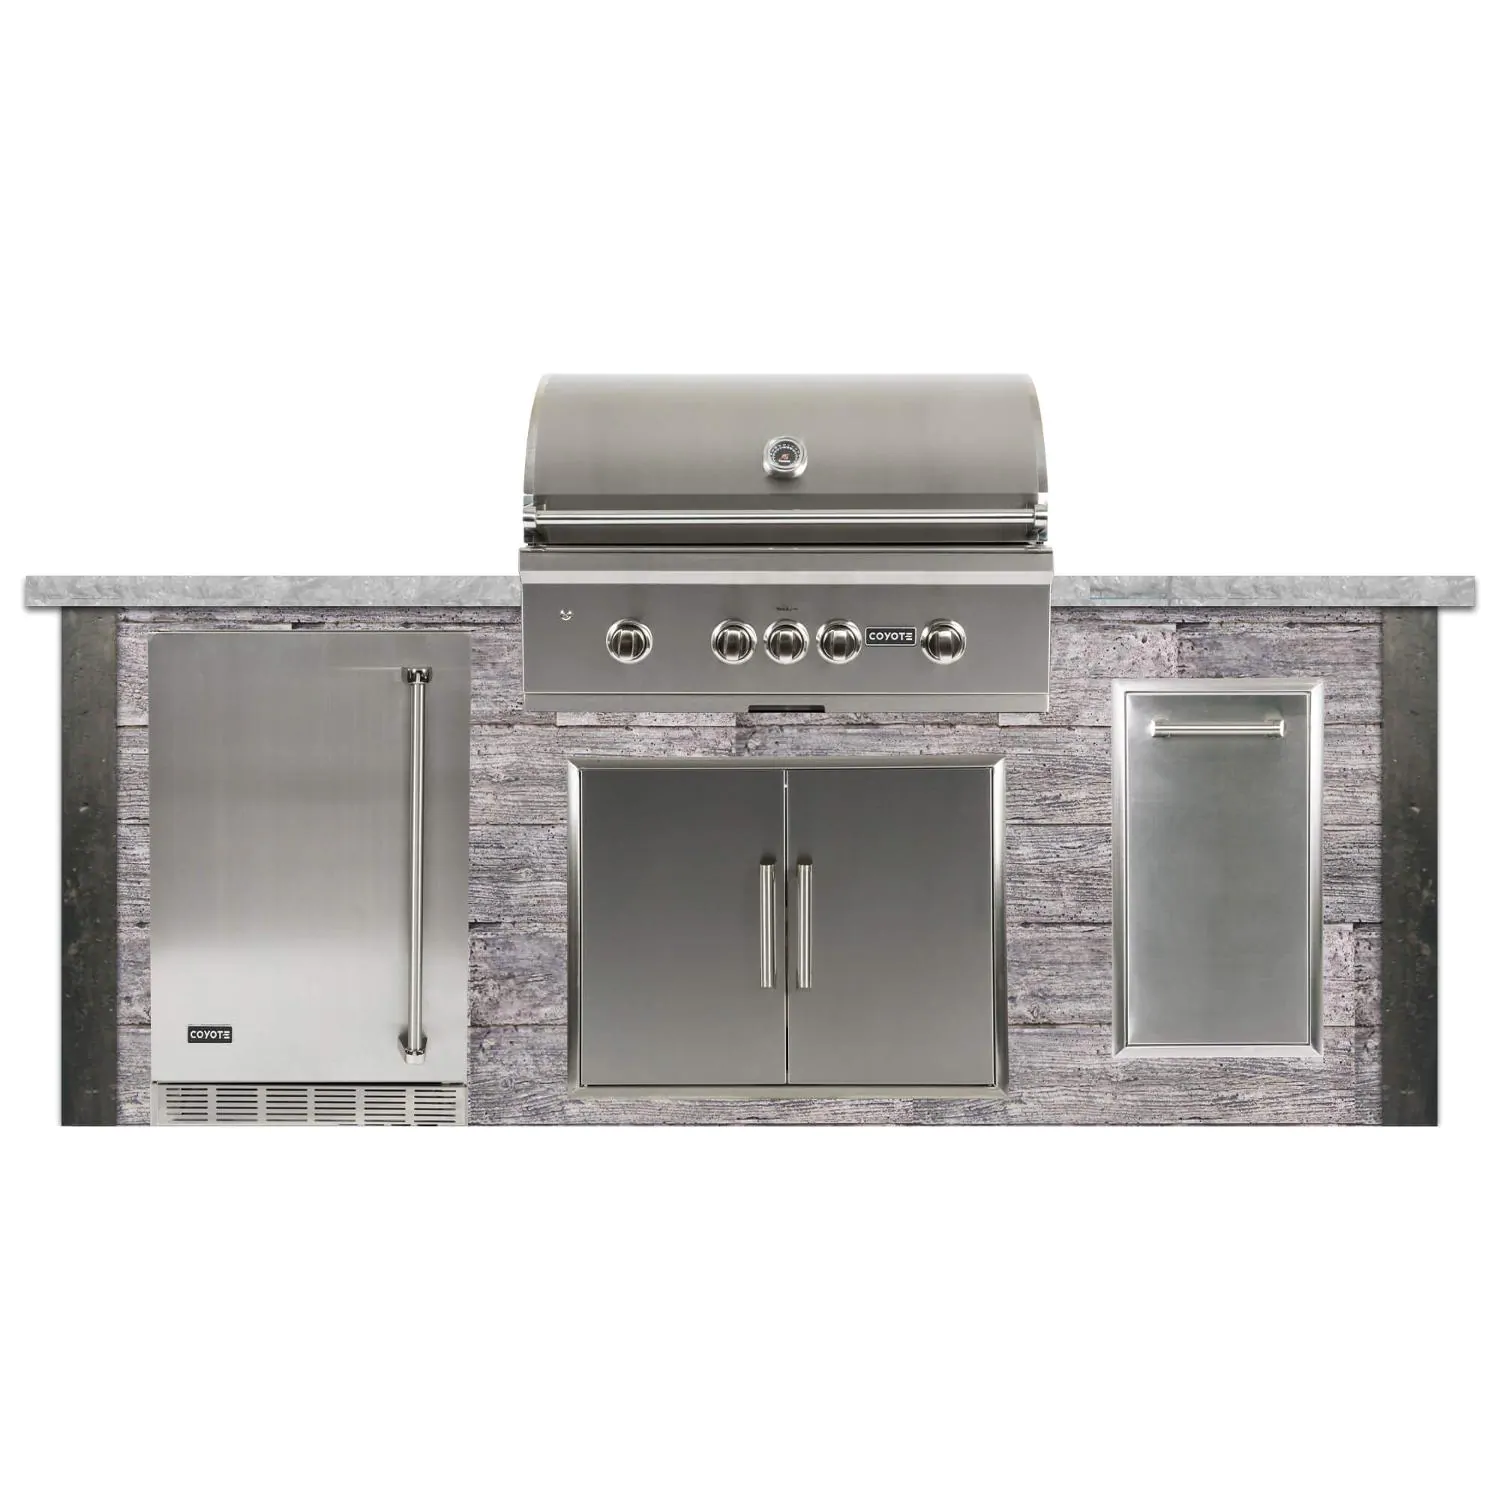 Coyote Ready-To-Assemble 8 Ft Outdoor Kitchen Island With 36-Inch S-Series Propane Gas Grill - Weathered Wood/Stone Gray - RTAC-G8-WG-C2SL36LP